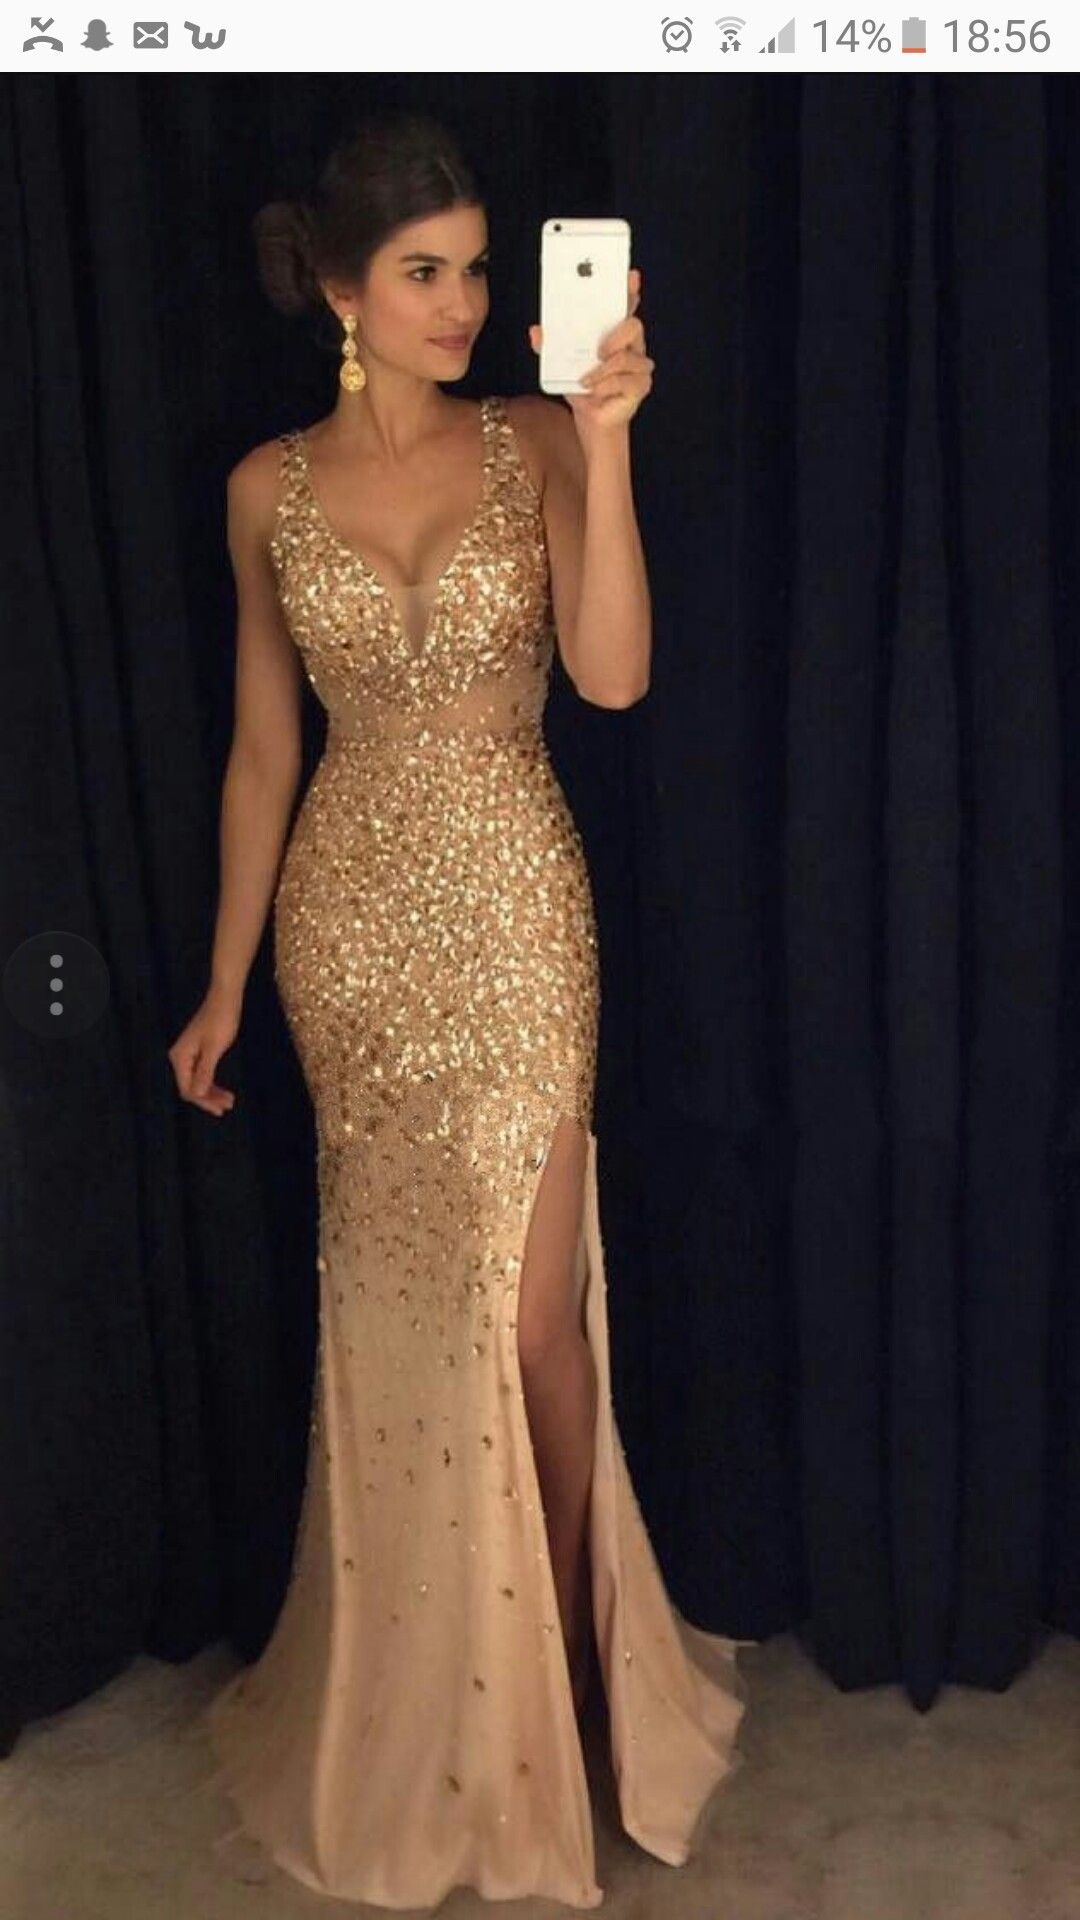 Golden sparkly prom dress | Mother of the bride dresses | Pinterest ...